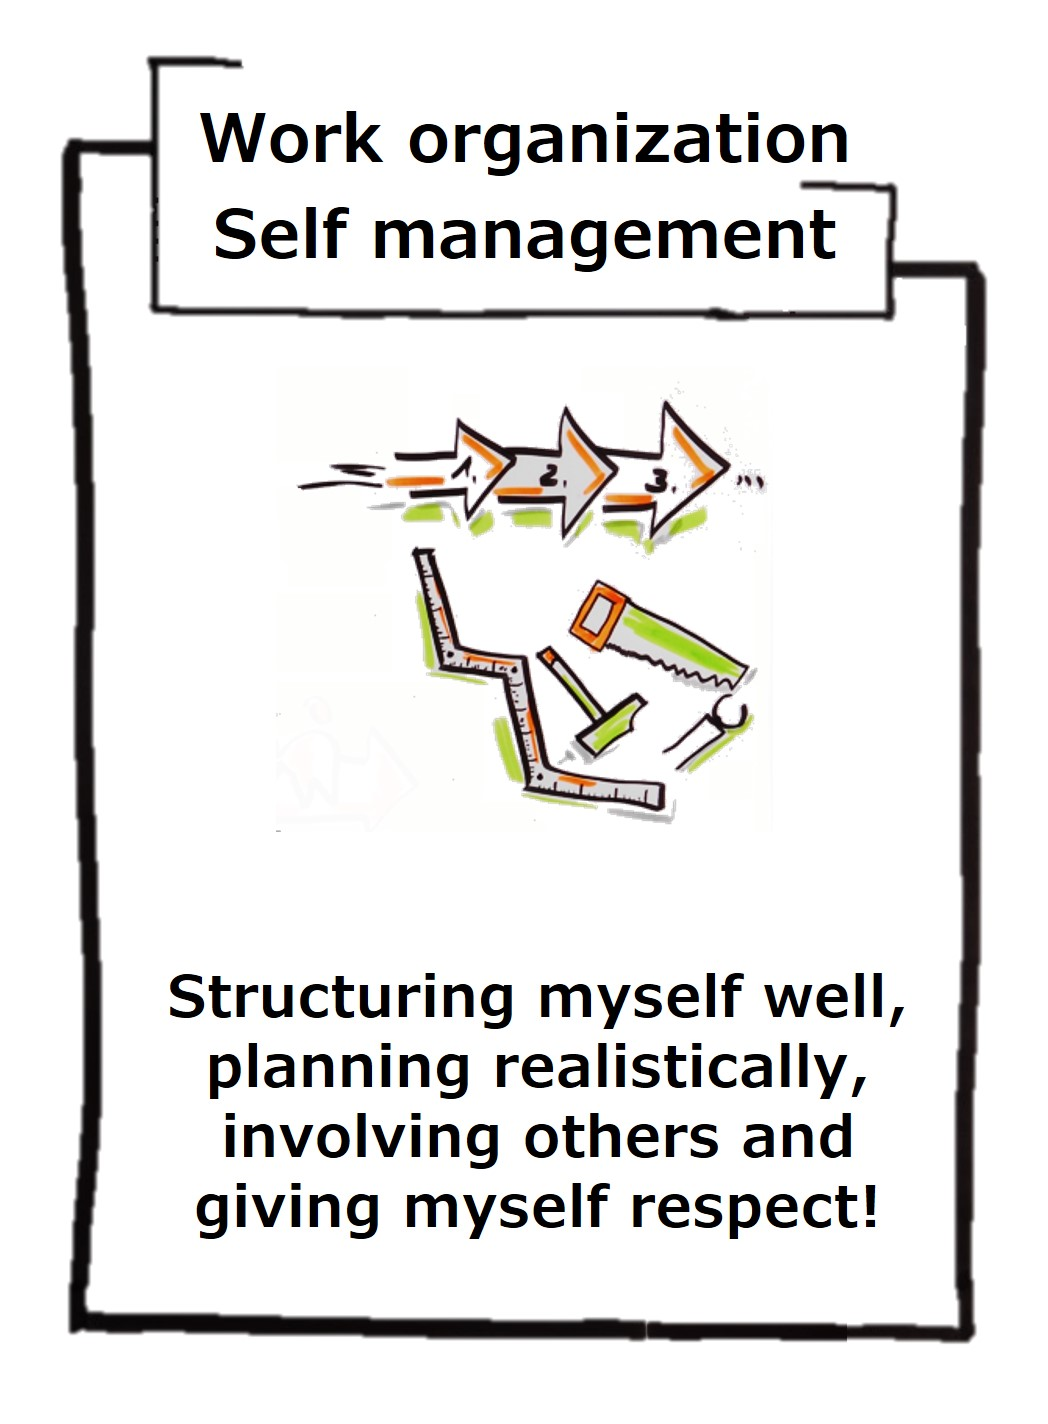 Your own work organization requires good self-management. If I do not have myself under control, my environment is driving me!